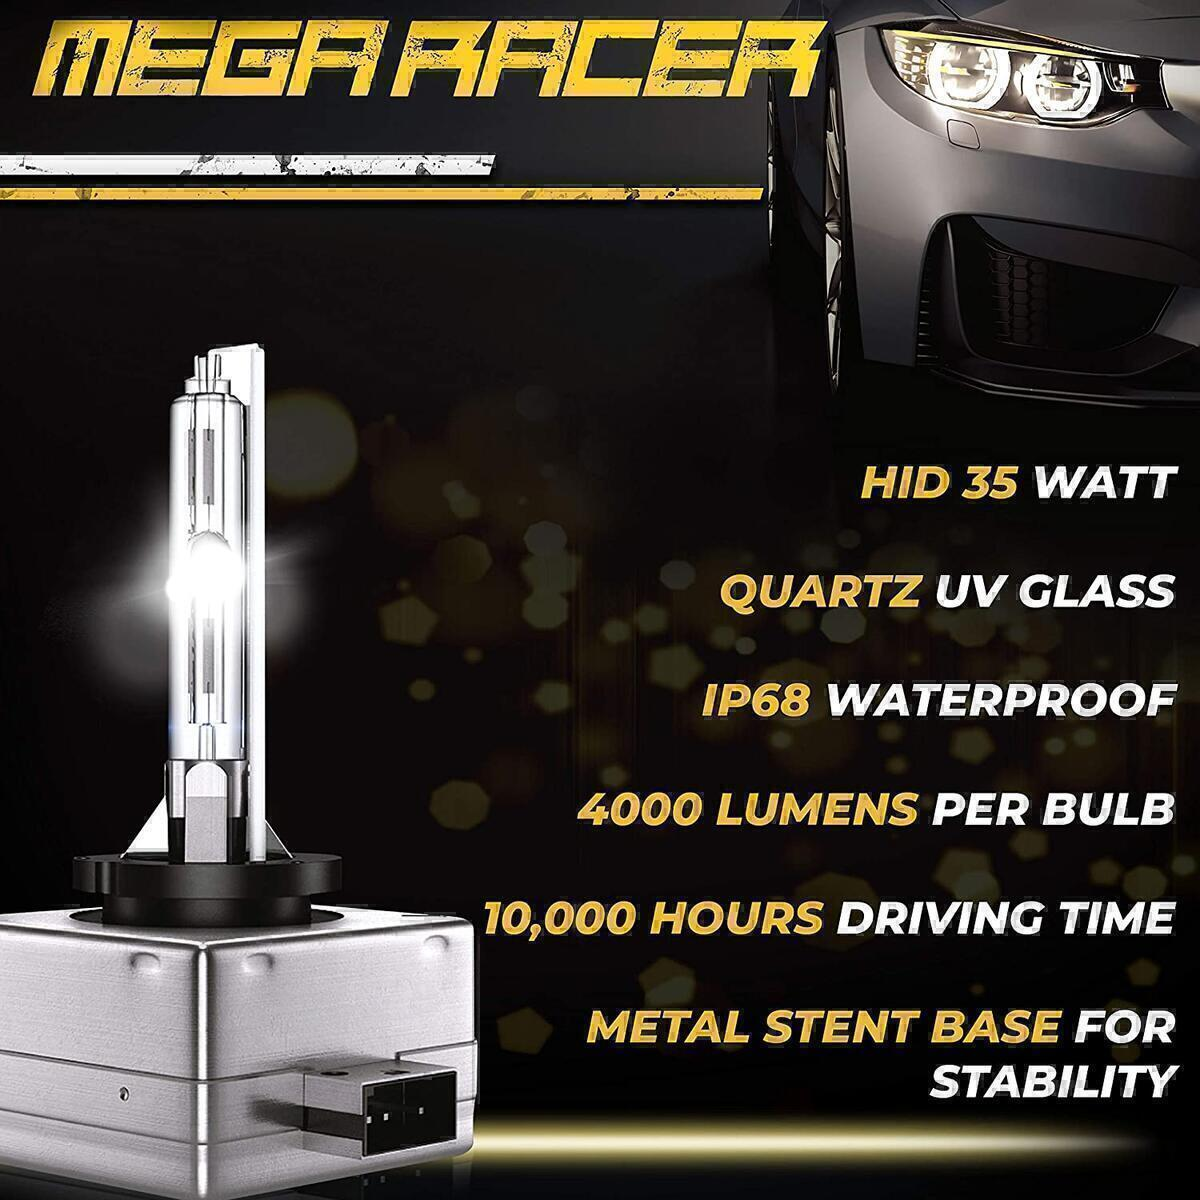 Mega Racer D1C/D1R/D1S HID Headlight Bulb for High Beam Low Beam 35W 6000K Diamond White 8000 Lumens Xenon Headlights IP68 Waterproof, Pack of 2